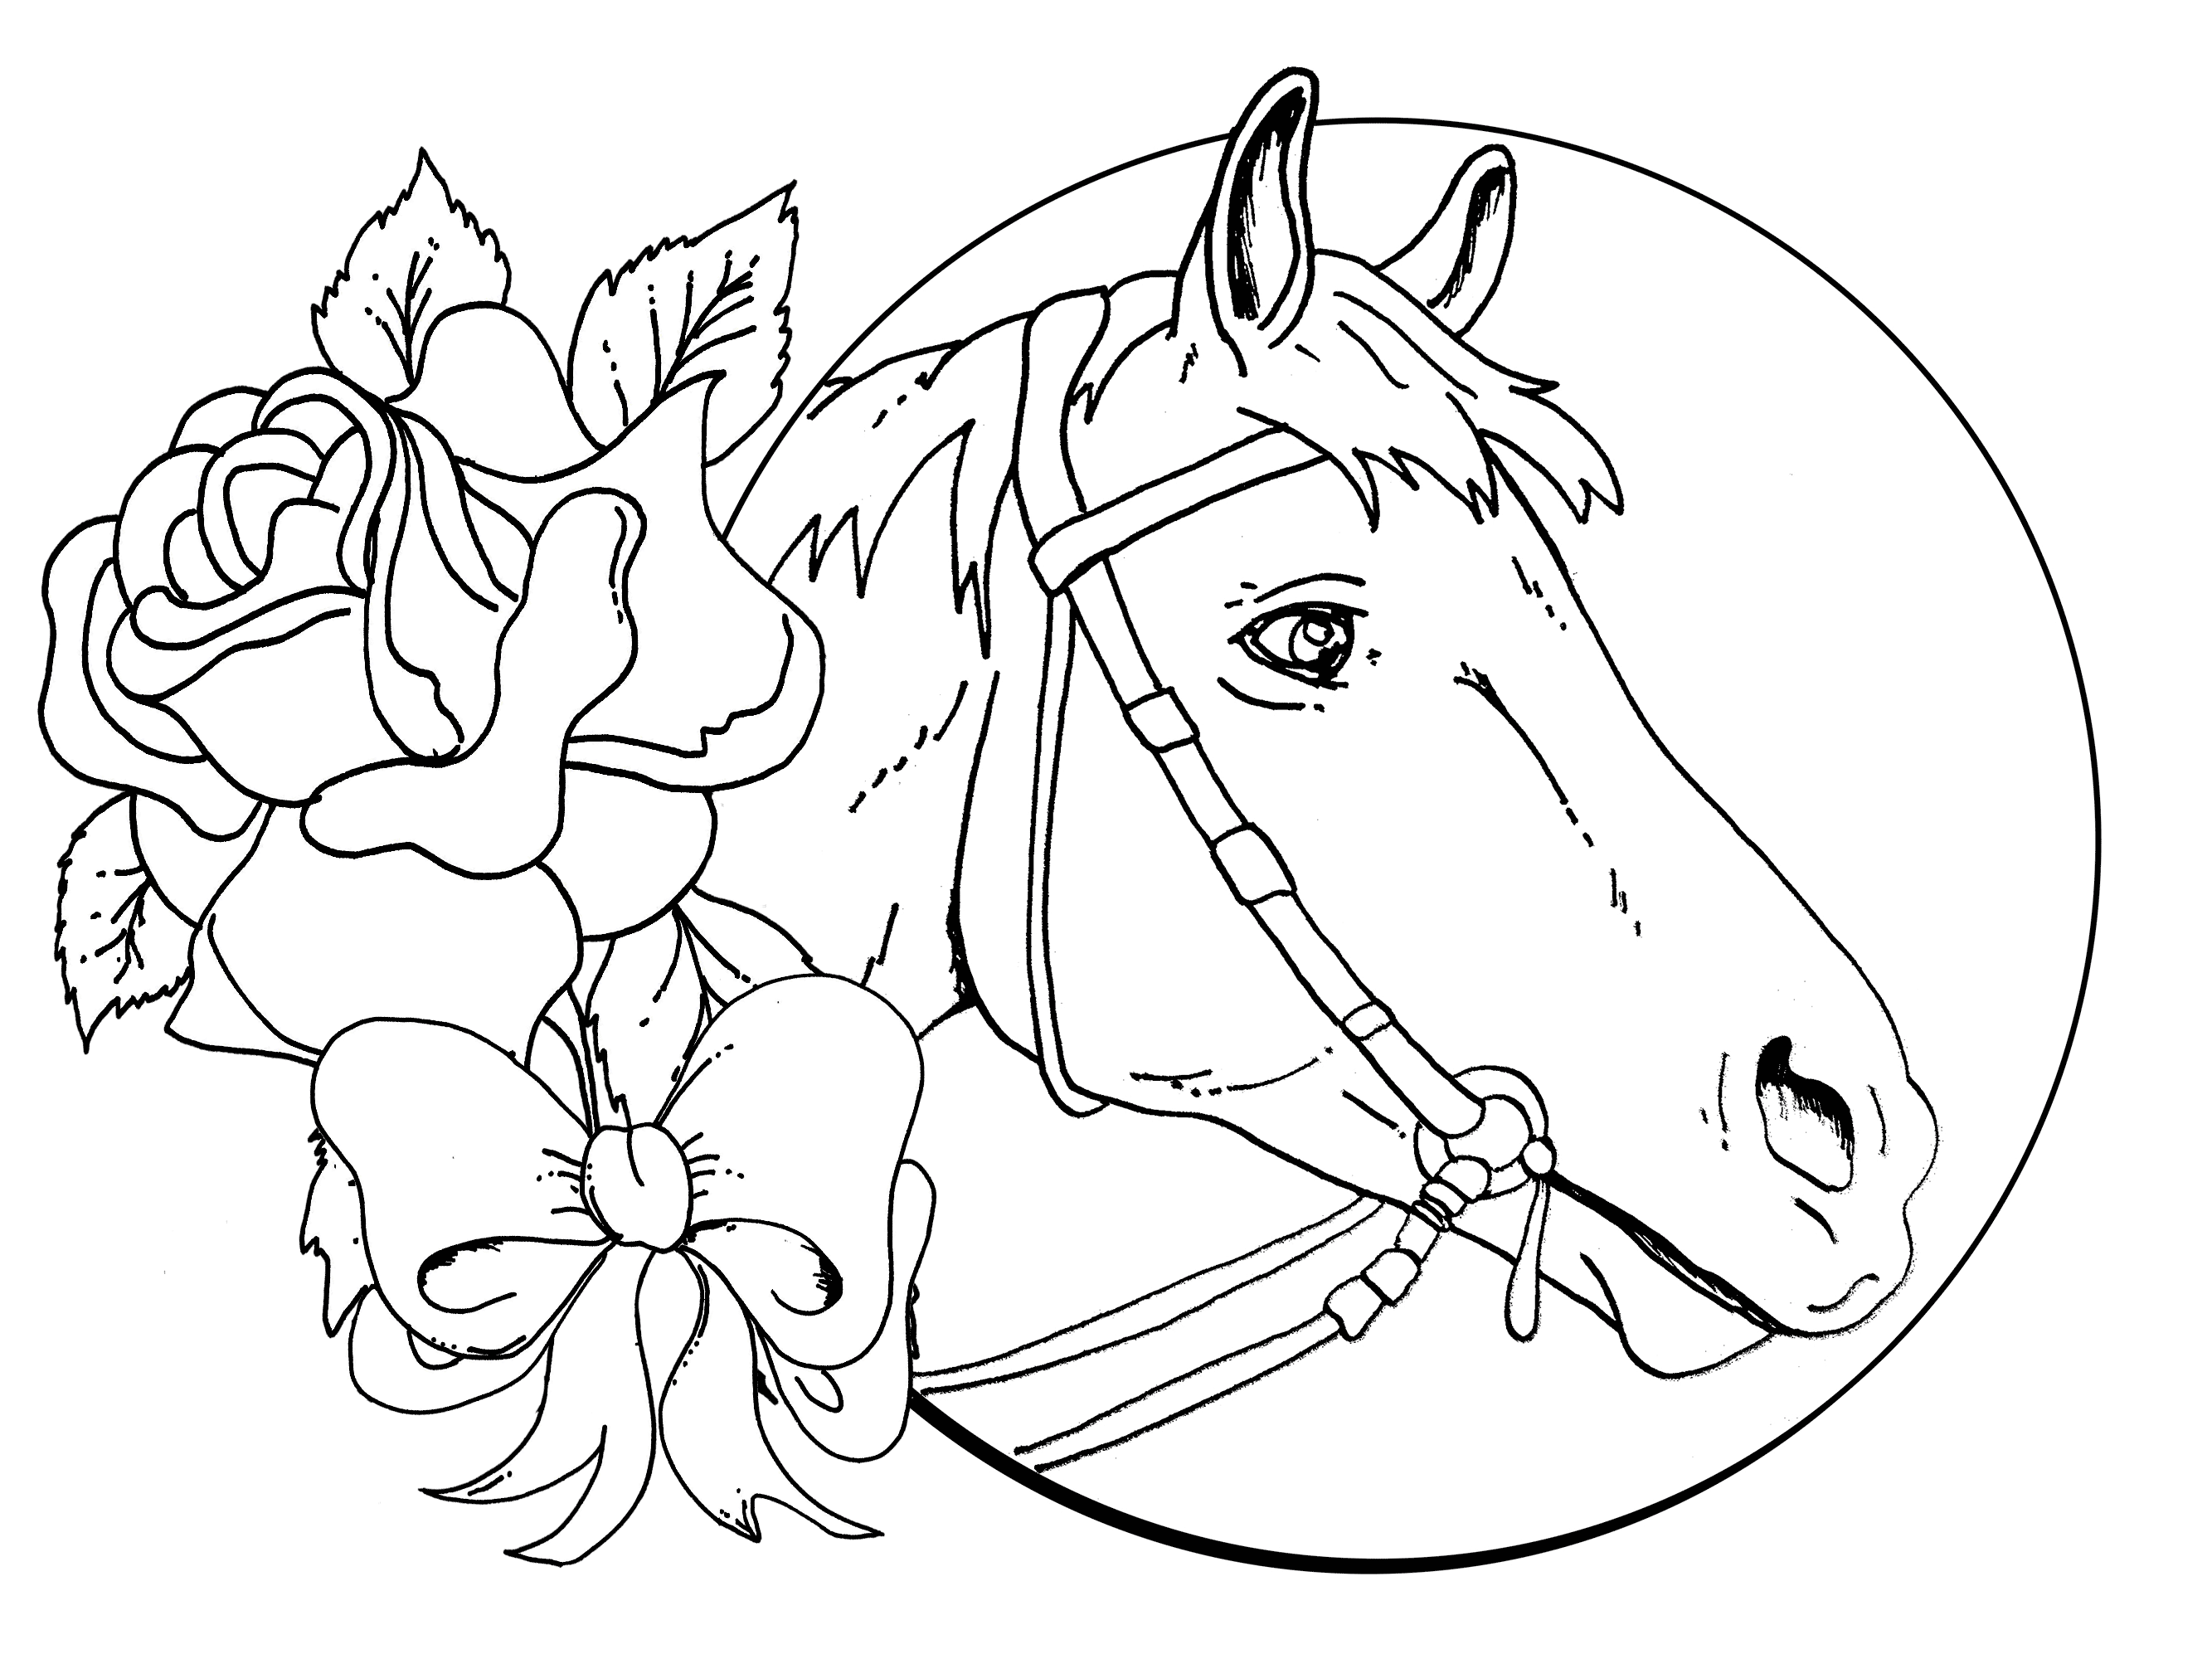 teenage girls coloring pages teenage girl coloring pages photo 13 timeless miraclecom girls coloring teenage pages